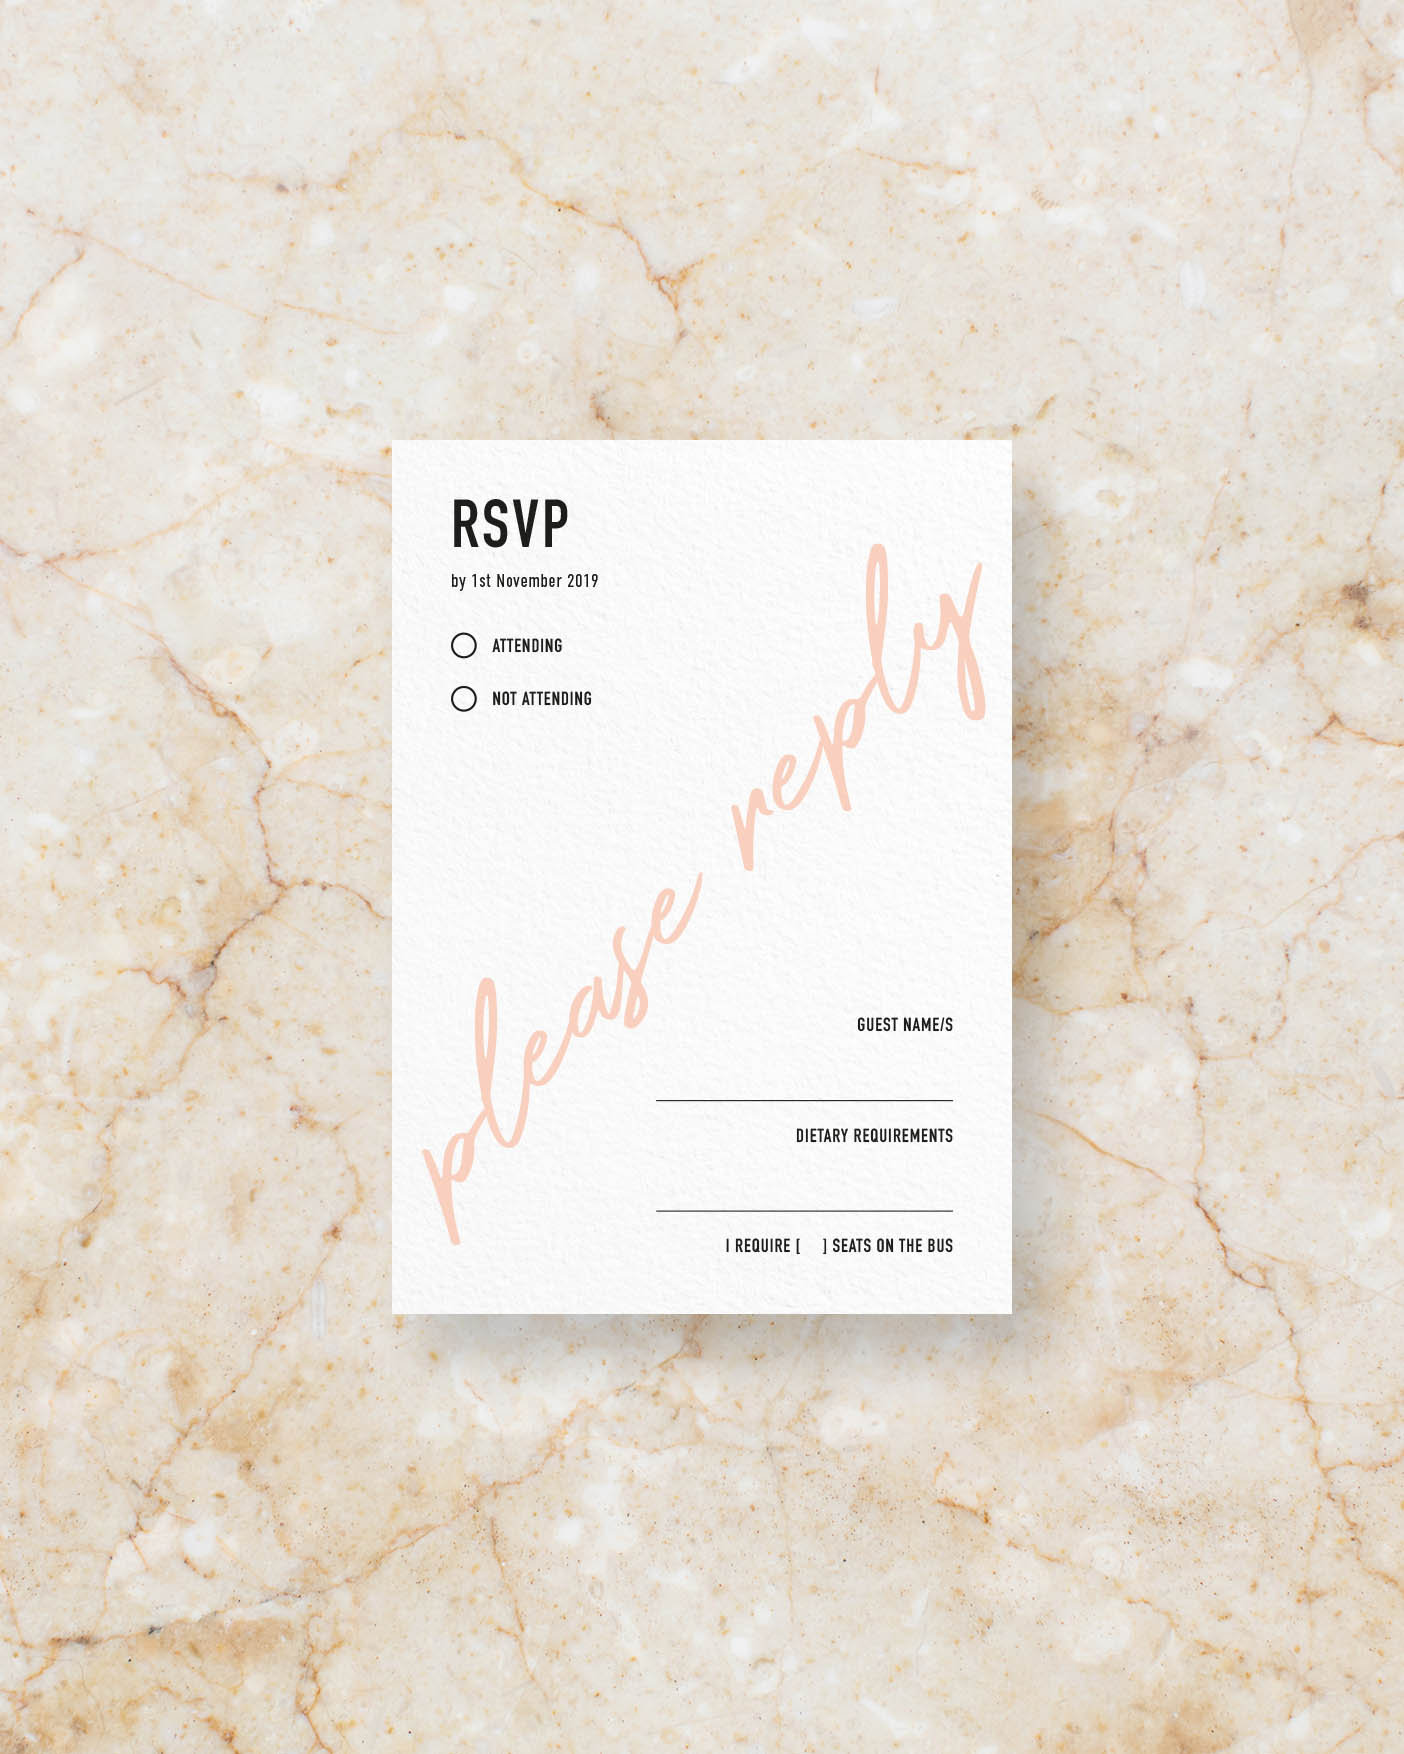 RSVP Card Back - White